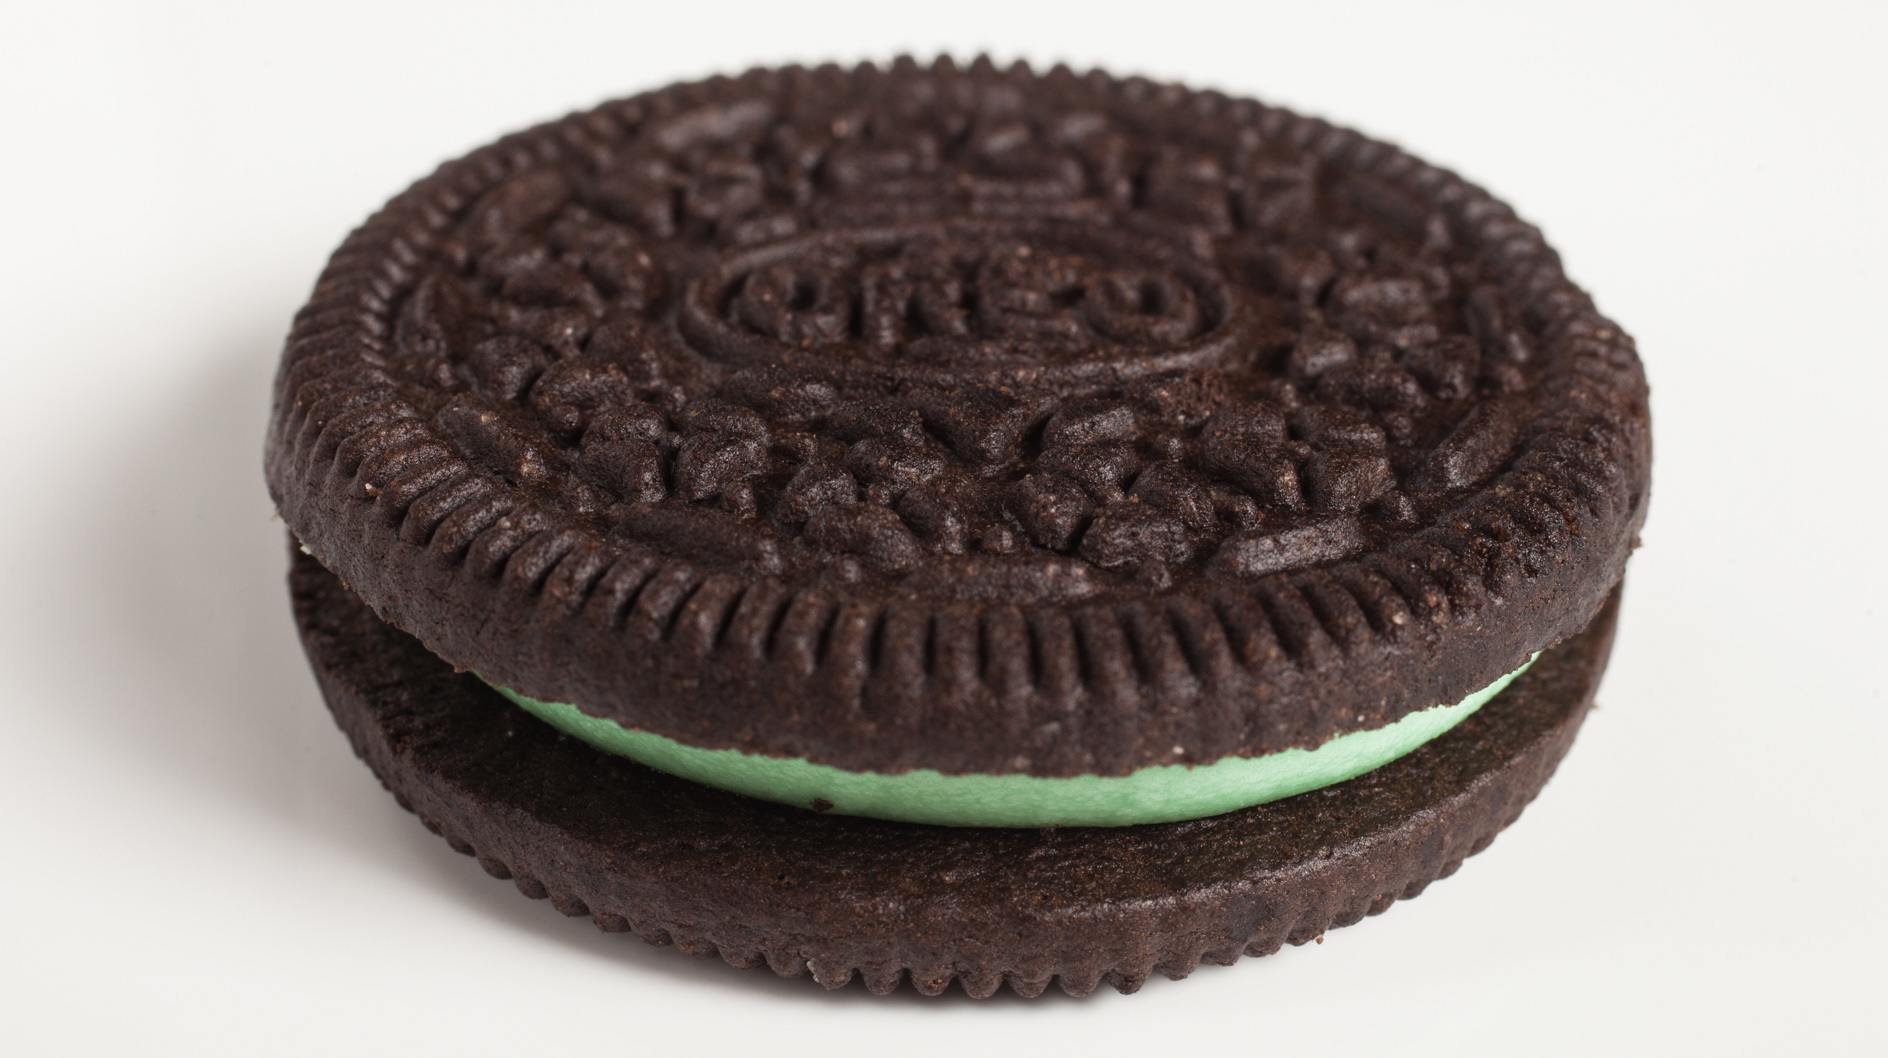 Our ranking of all the Oreo flavors, from best to worst